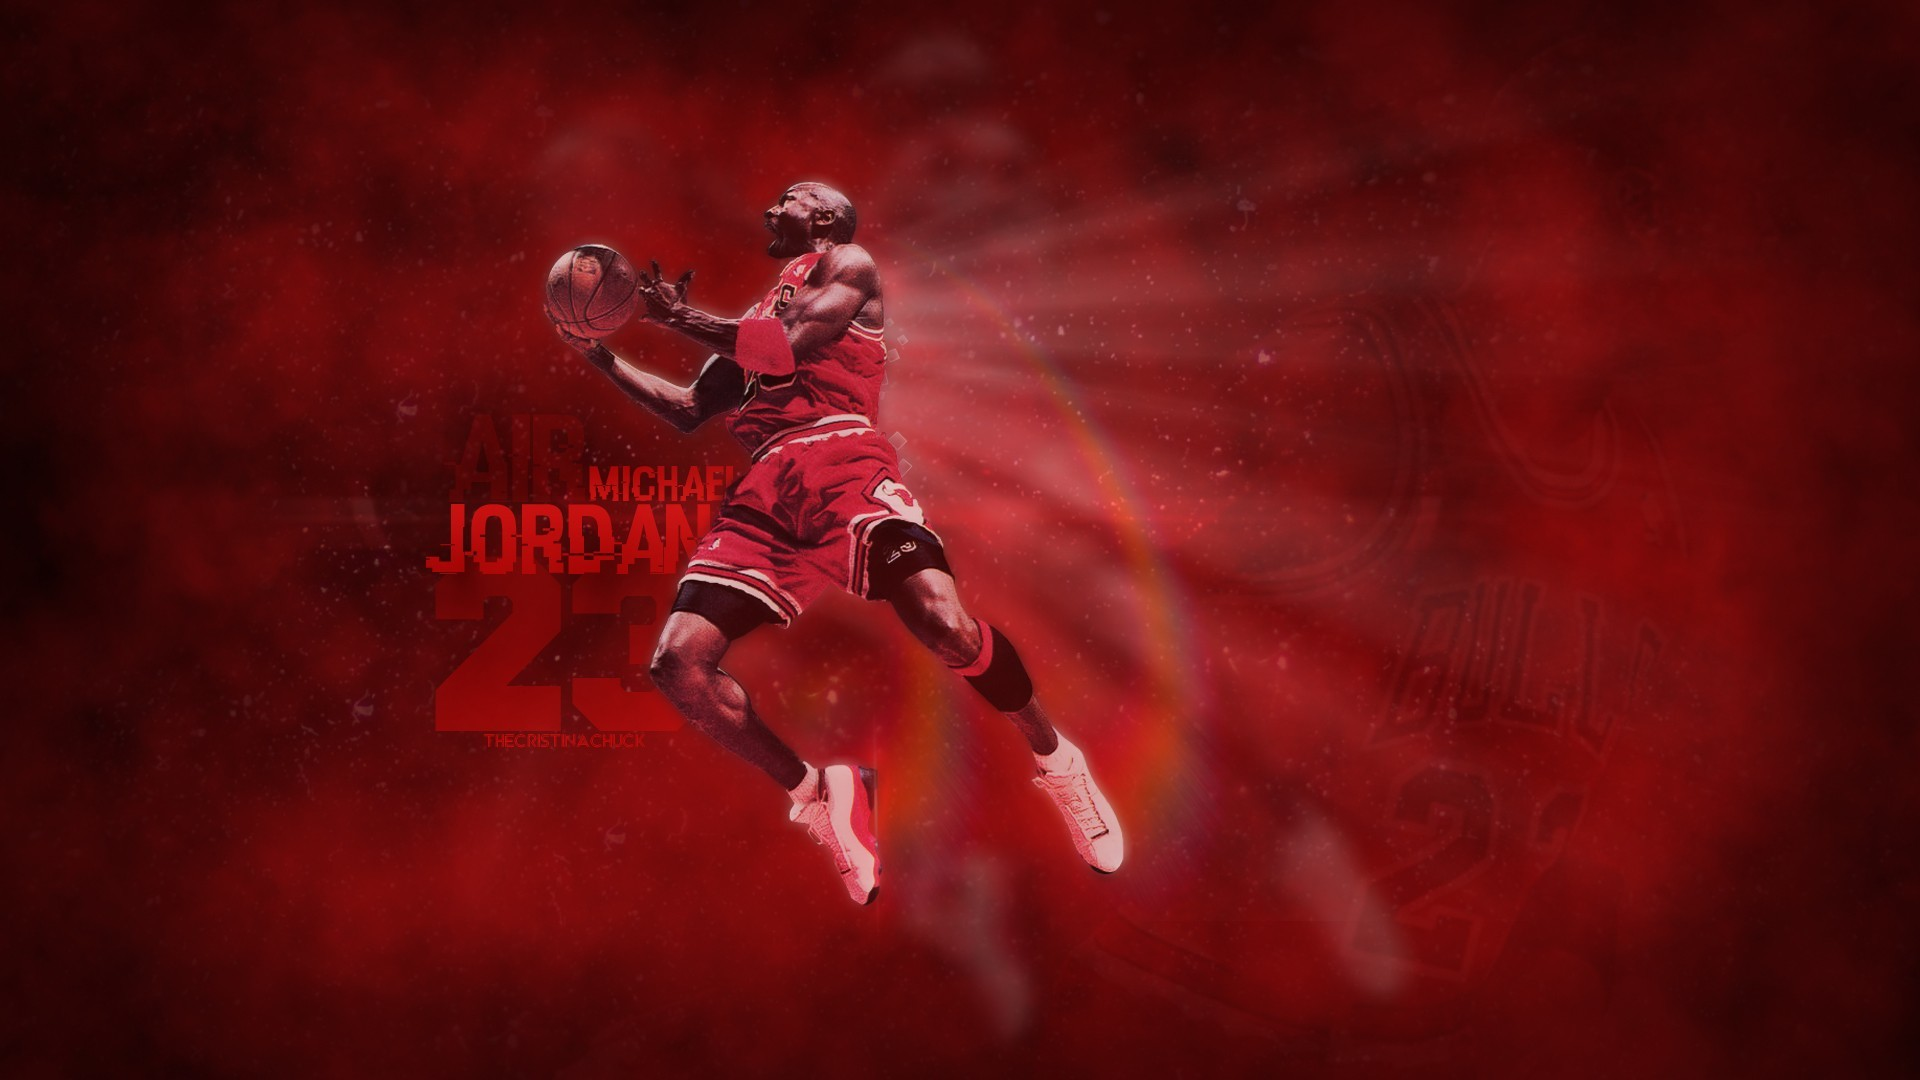 1920x1080  Jordan Wallpapers HD free download | Wallpapers, Backgrounds,  Images .